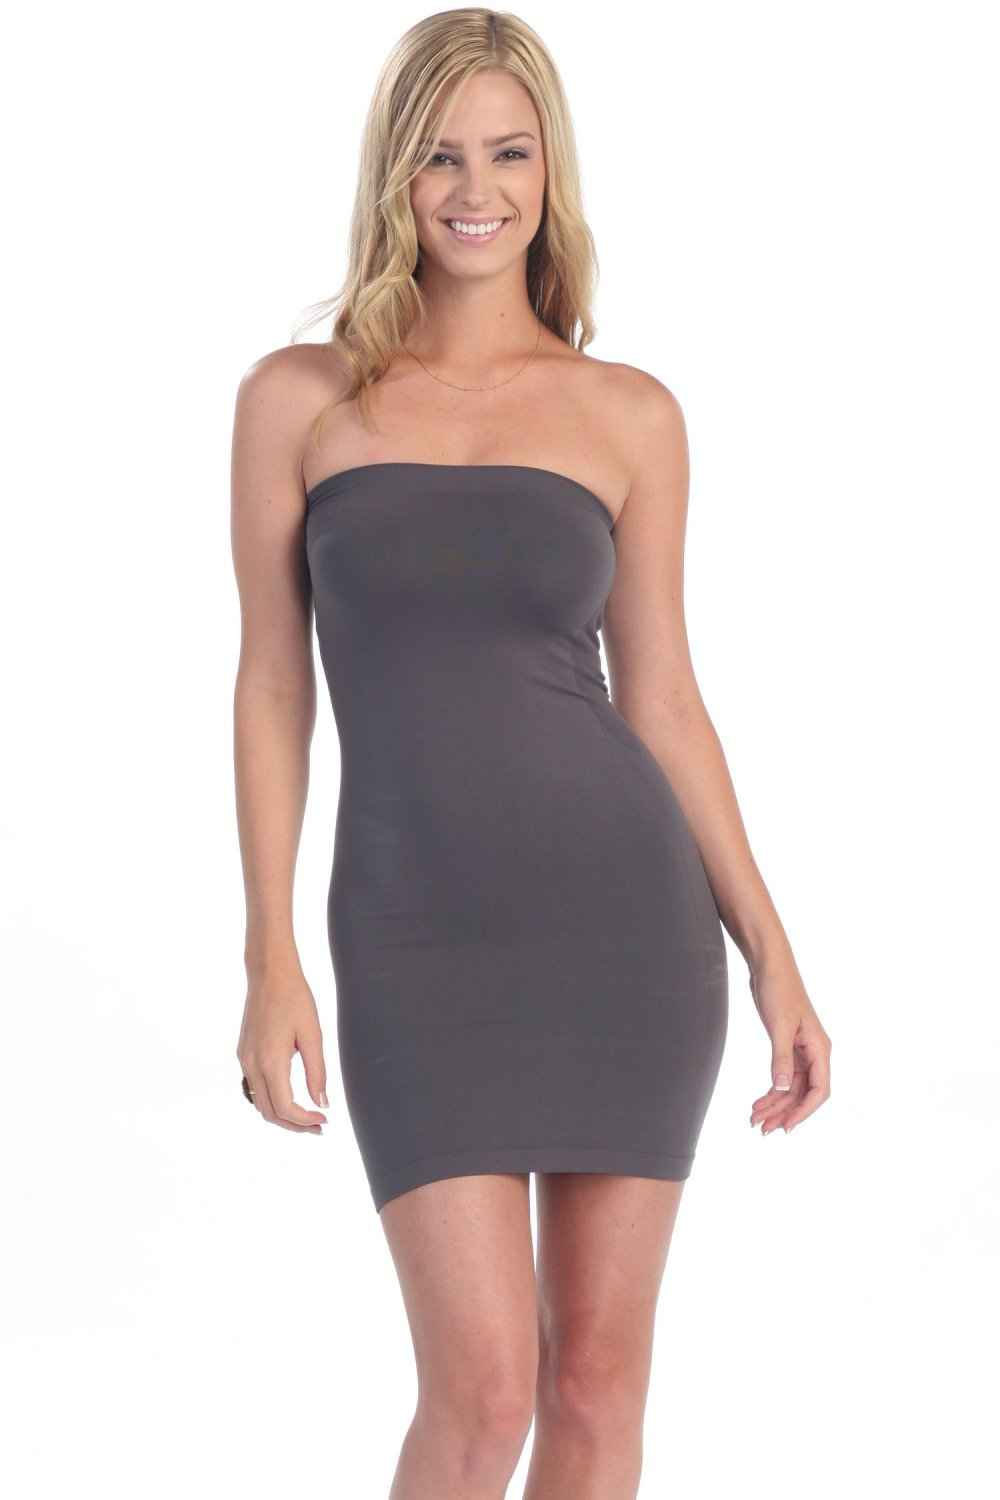 Charcoal Tube Dress Super Soft Form Fitting and Tight made ...